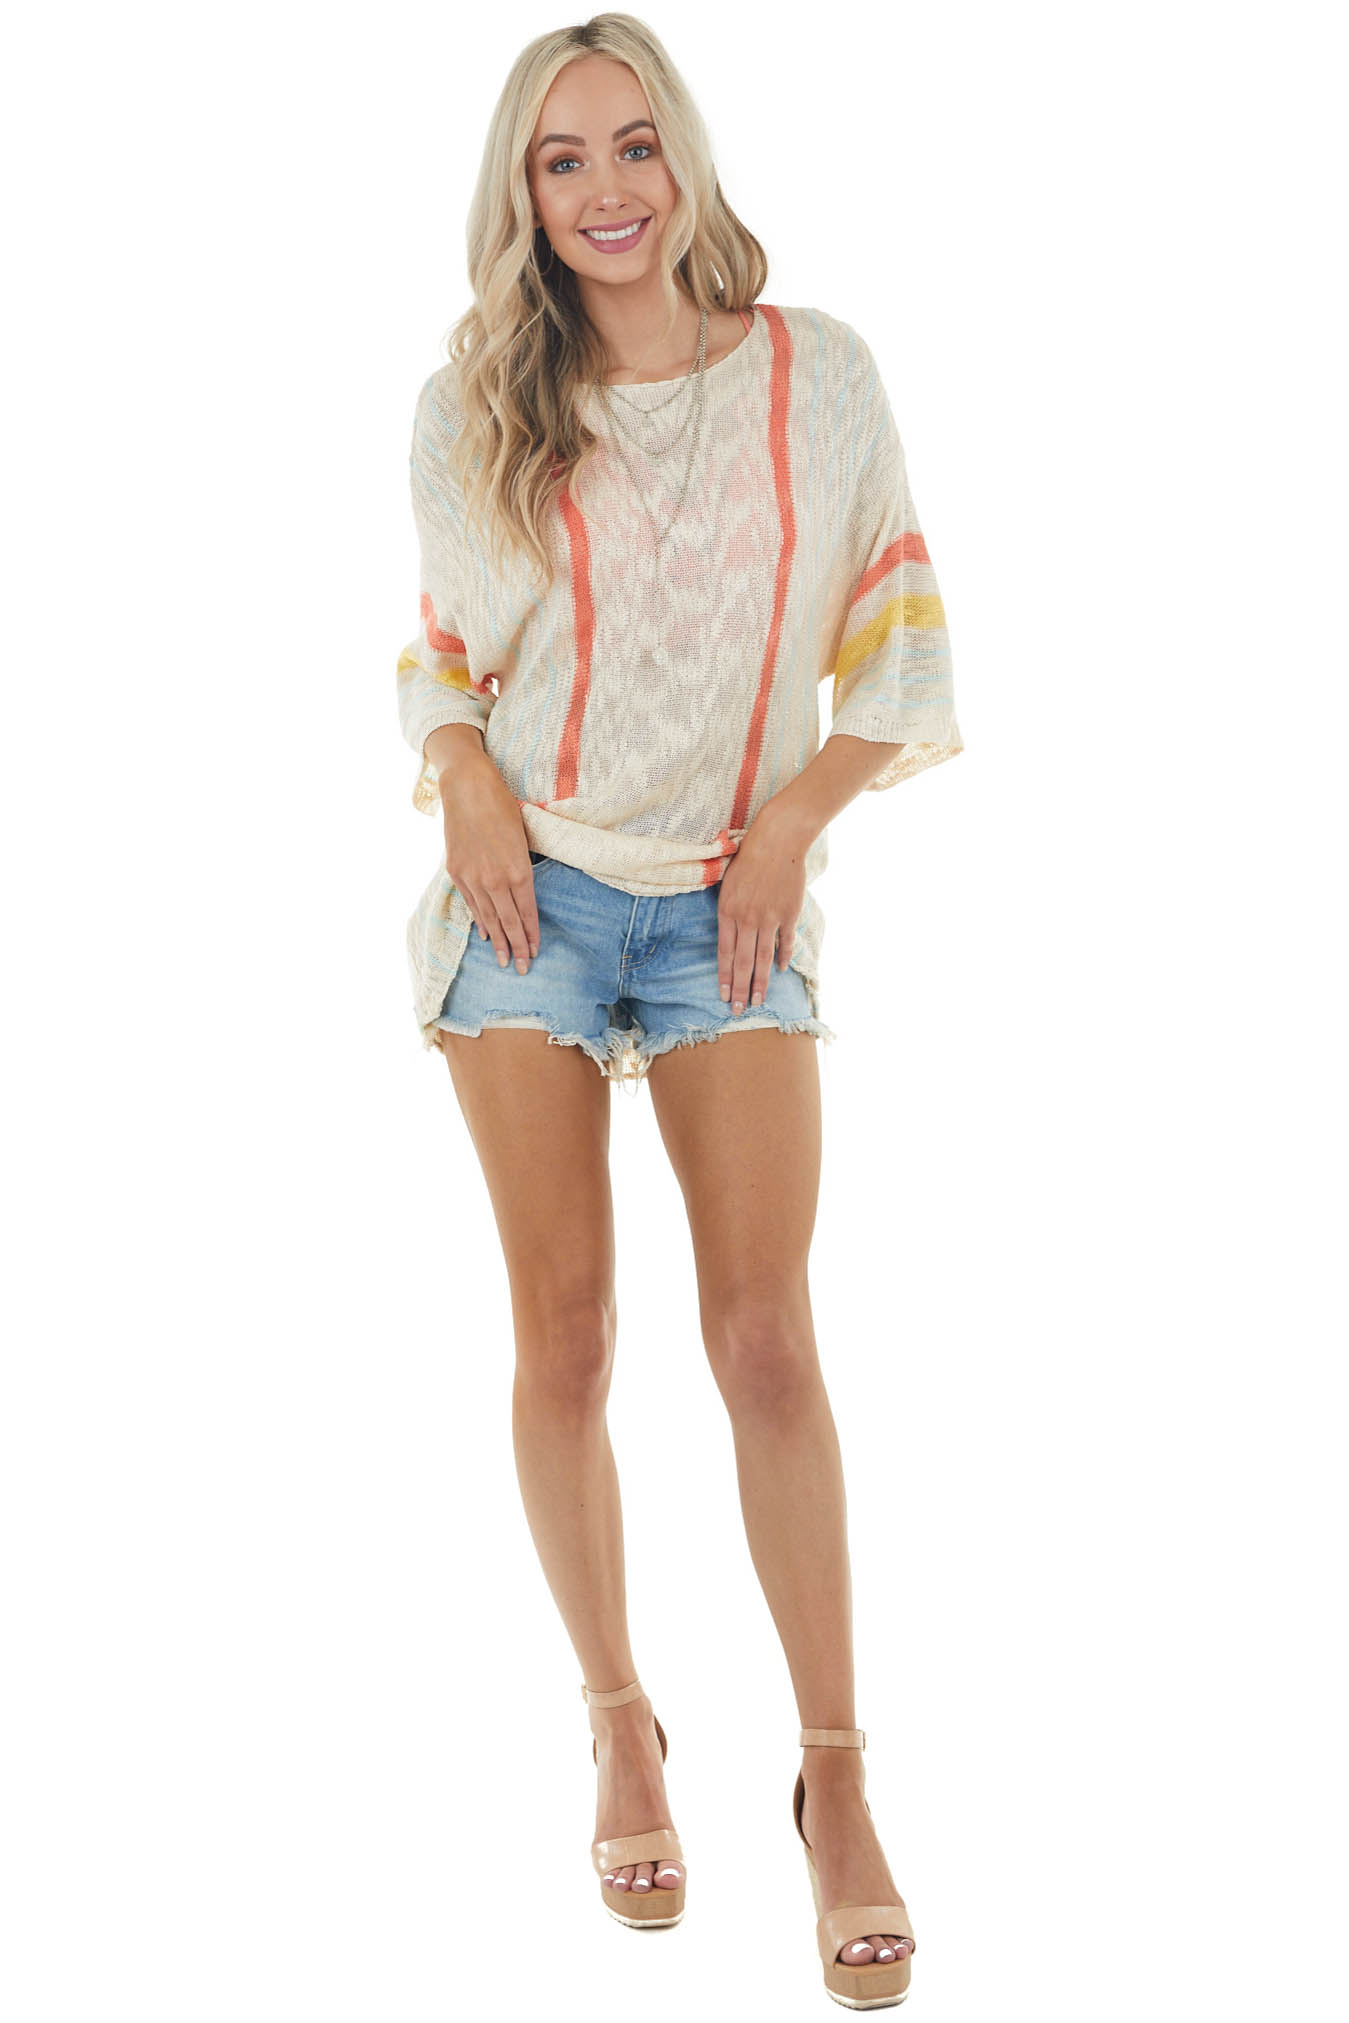 Desert Sand Striped Loose Sweater with Half Length Sleeves